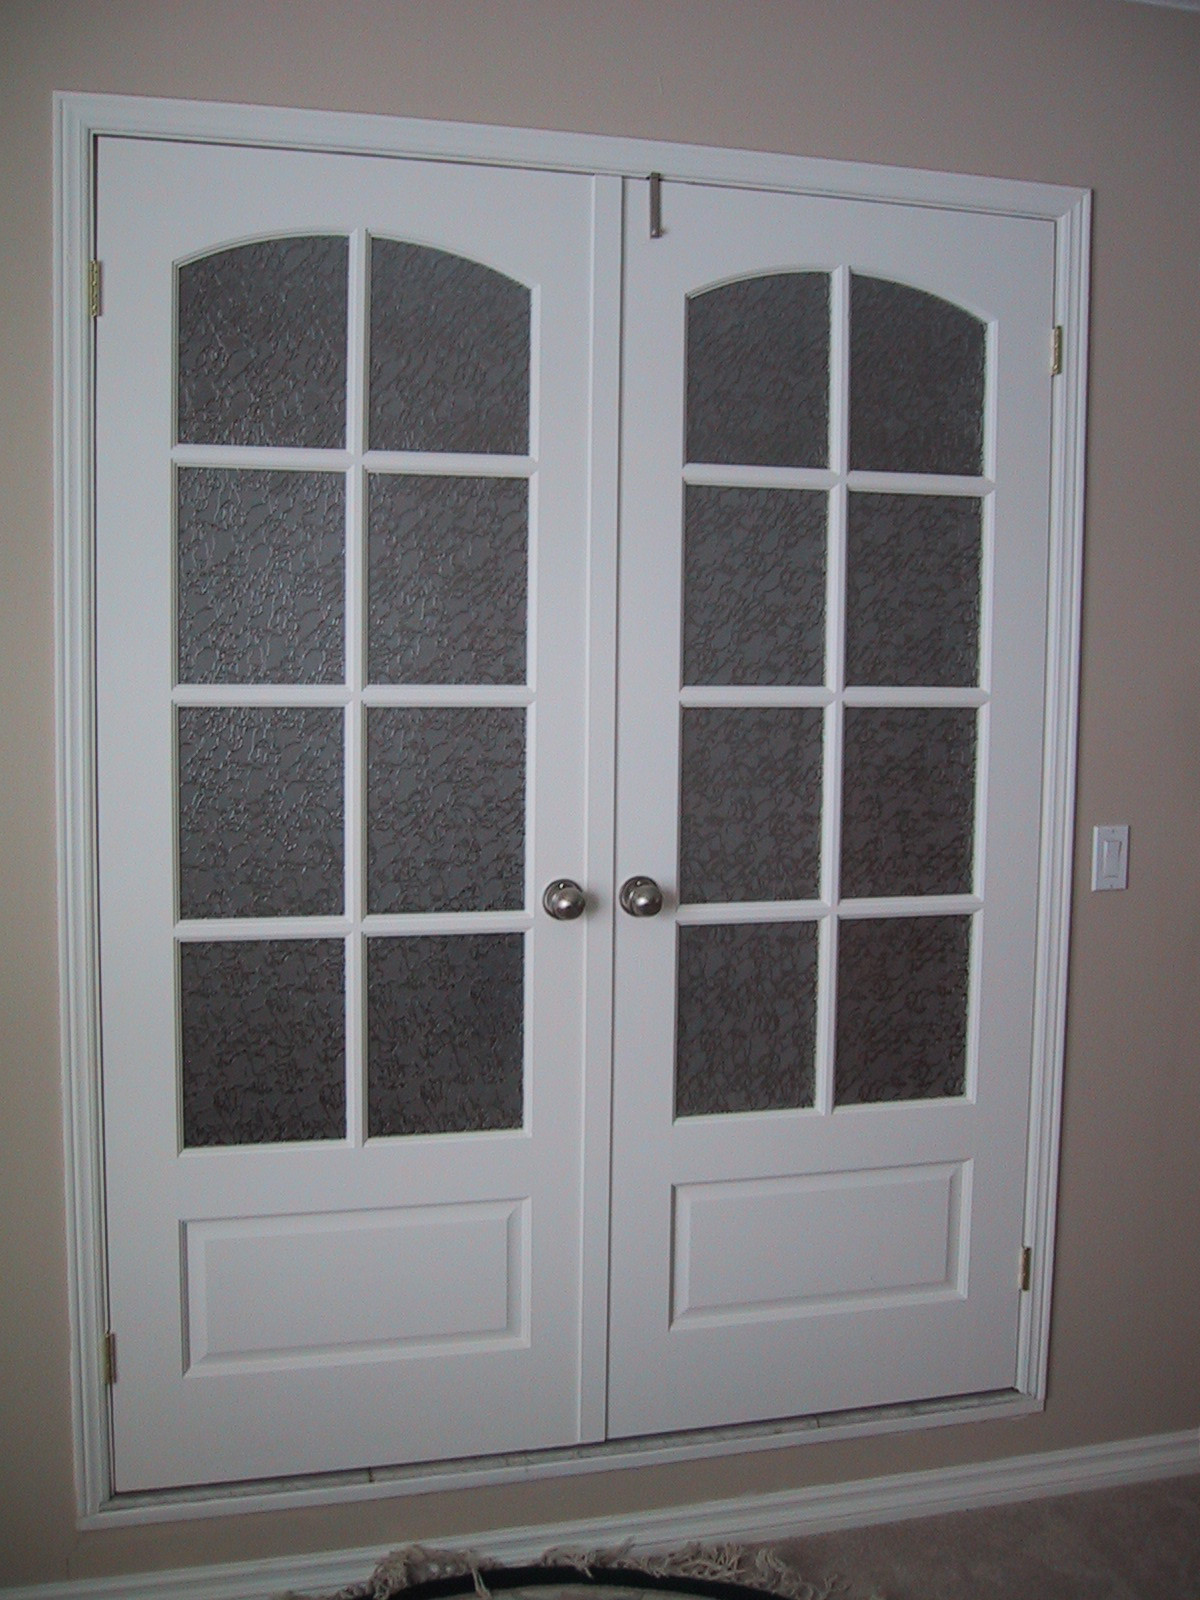 24 inch glass panel interior door is a slim stylish door for your living room